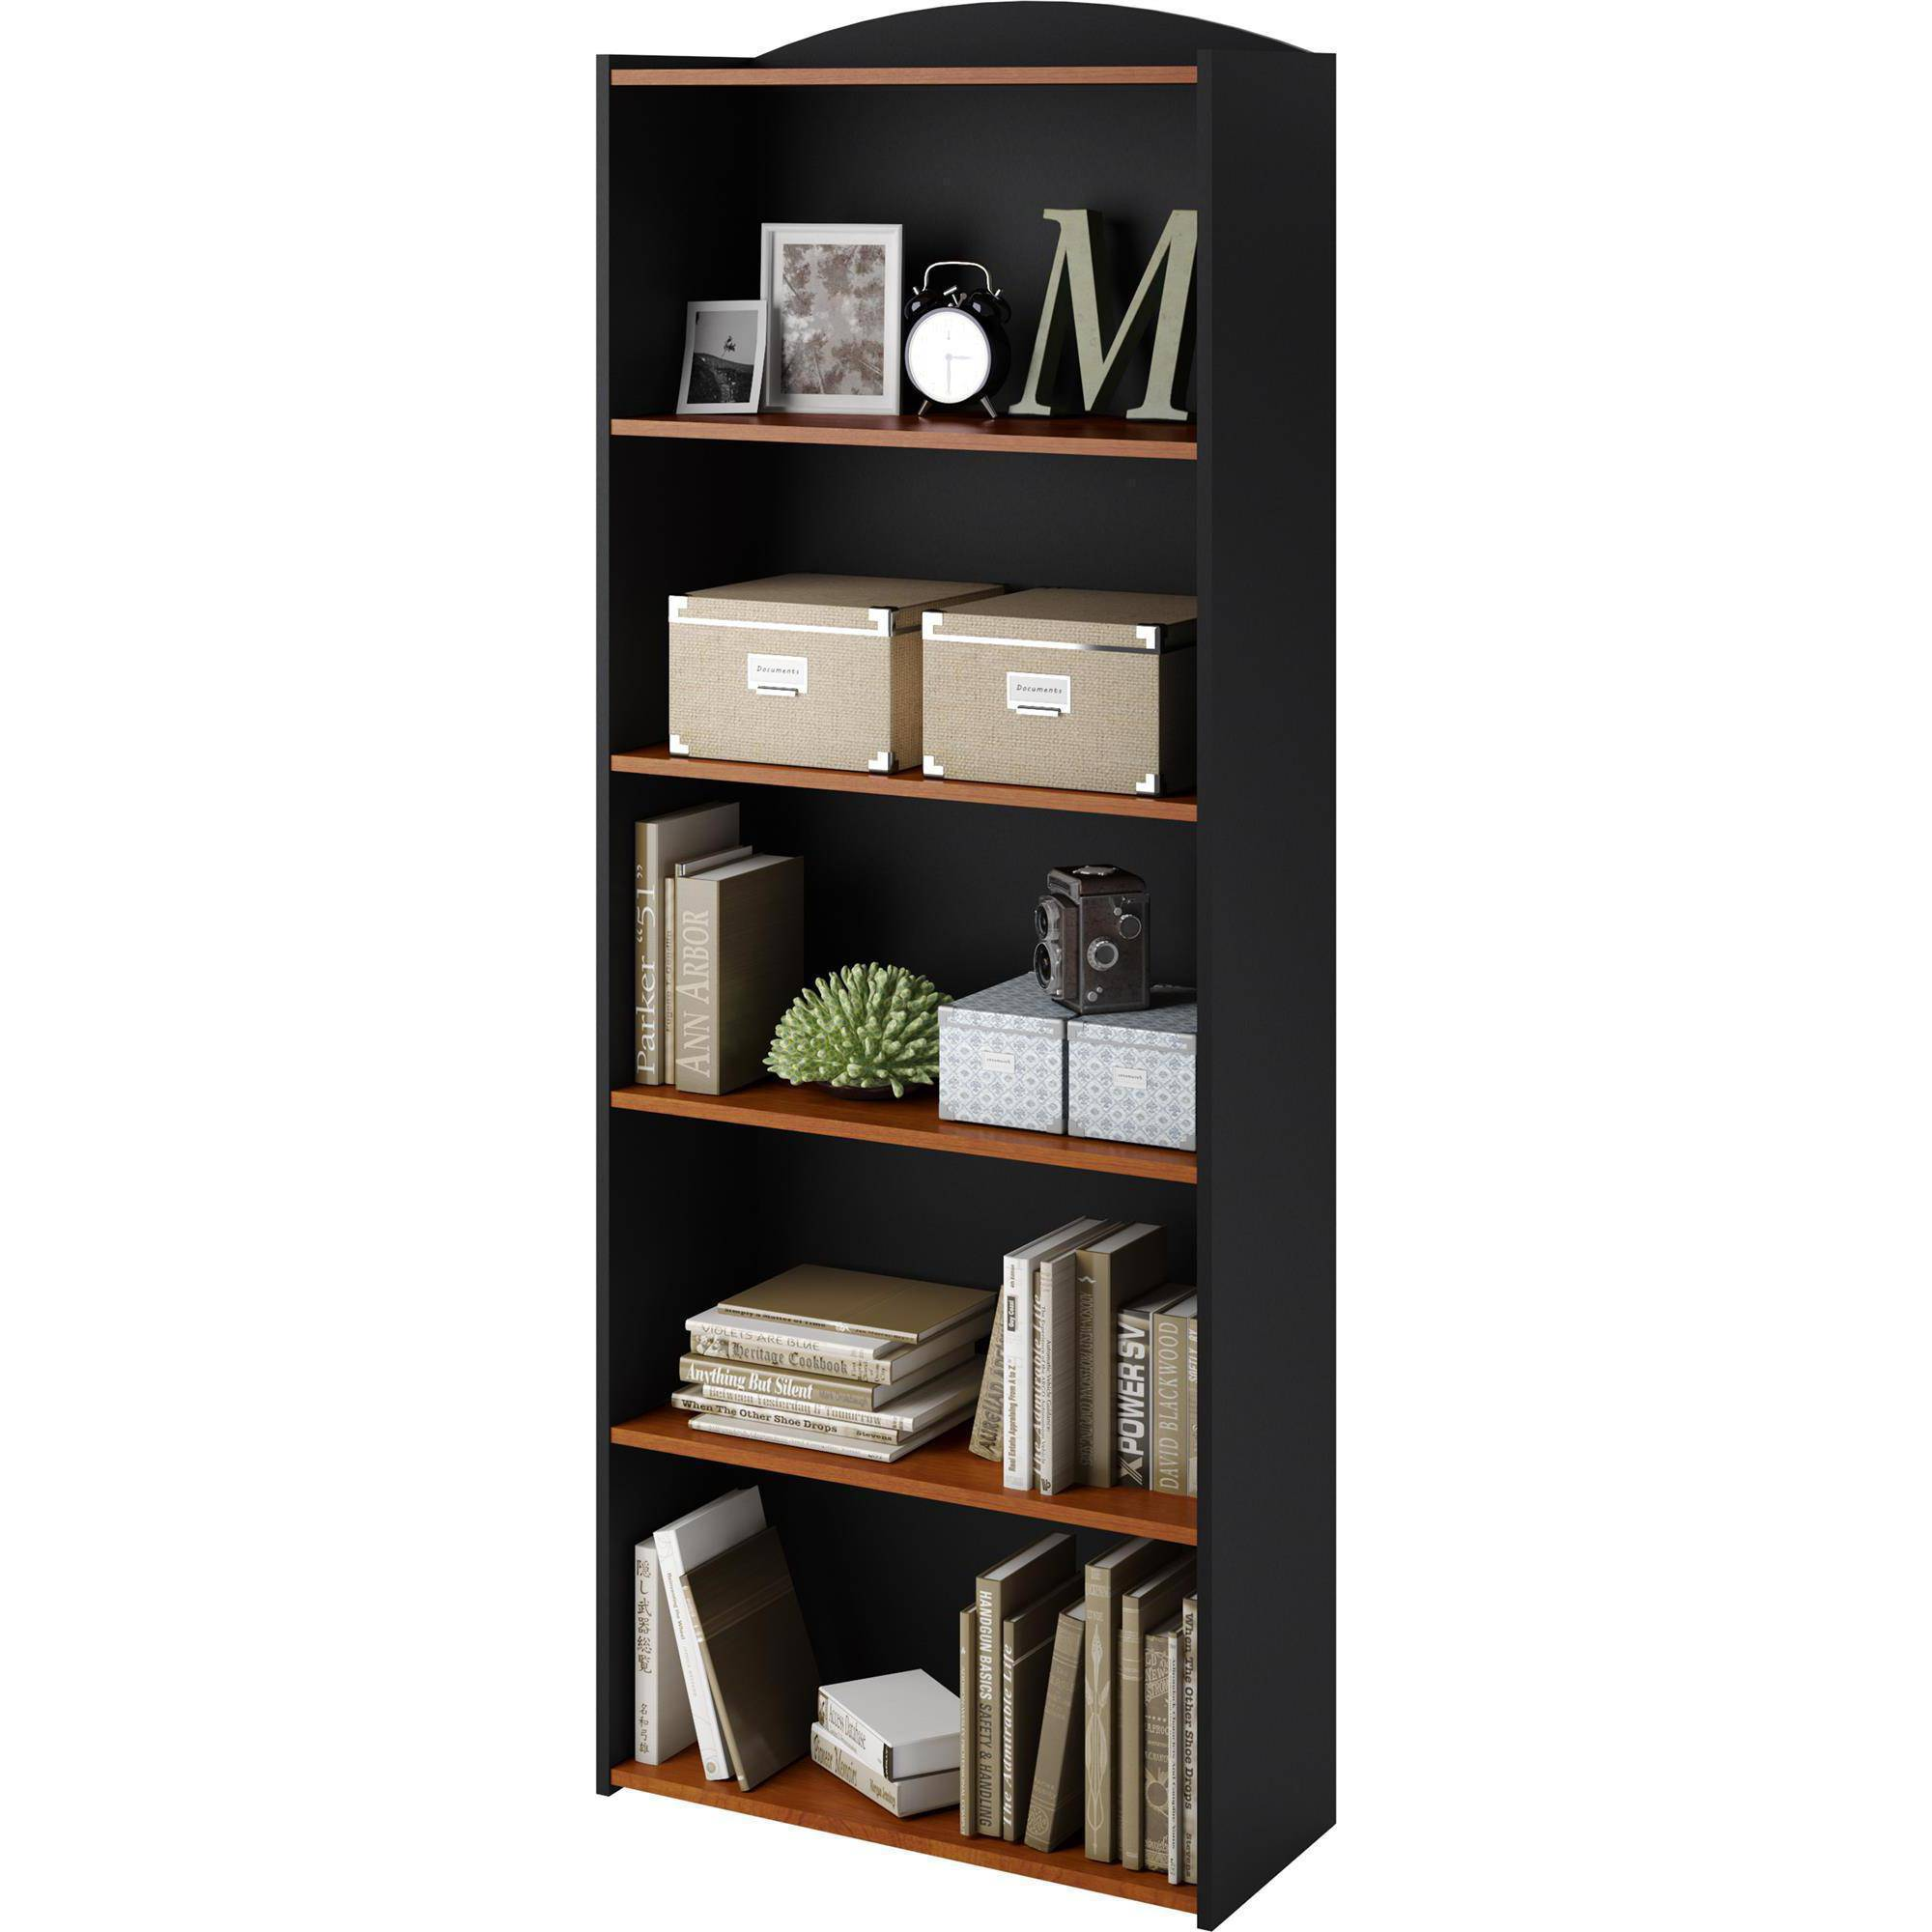 Mainstays 5 Shelf Bookcase, Multiple Colors   Walmart.com